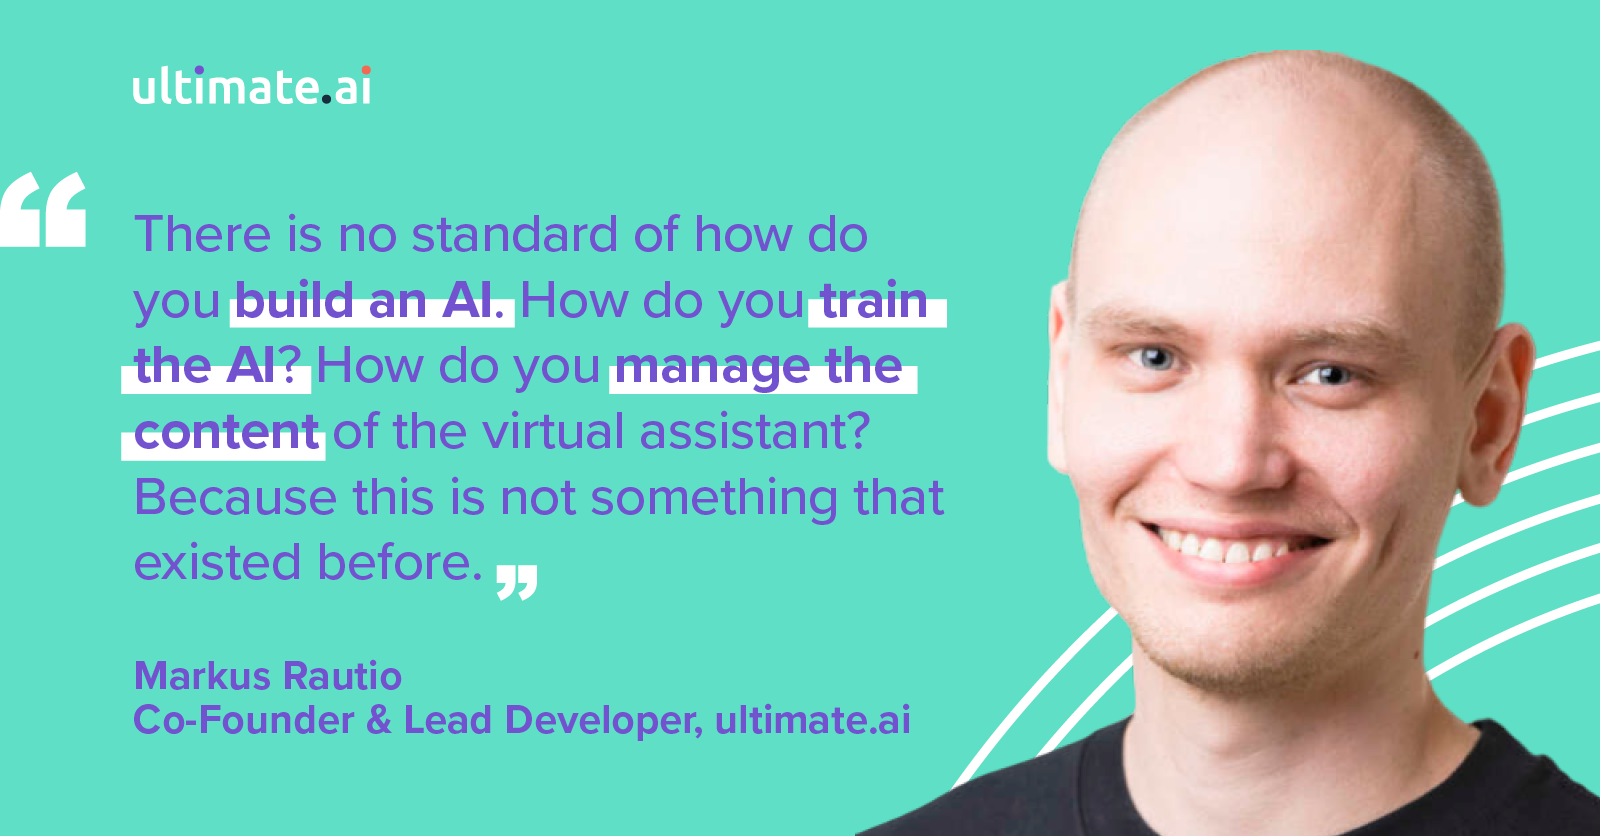 There is no standard of how do you build an AI. How do you train the AI? How do you manage the content of the virtual assistant? Because this is not something that existed before.